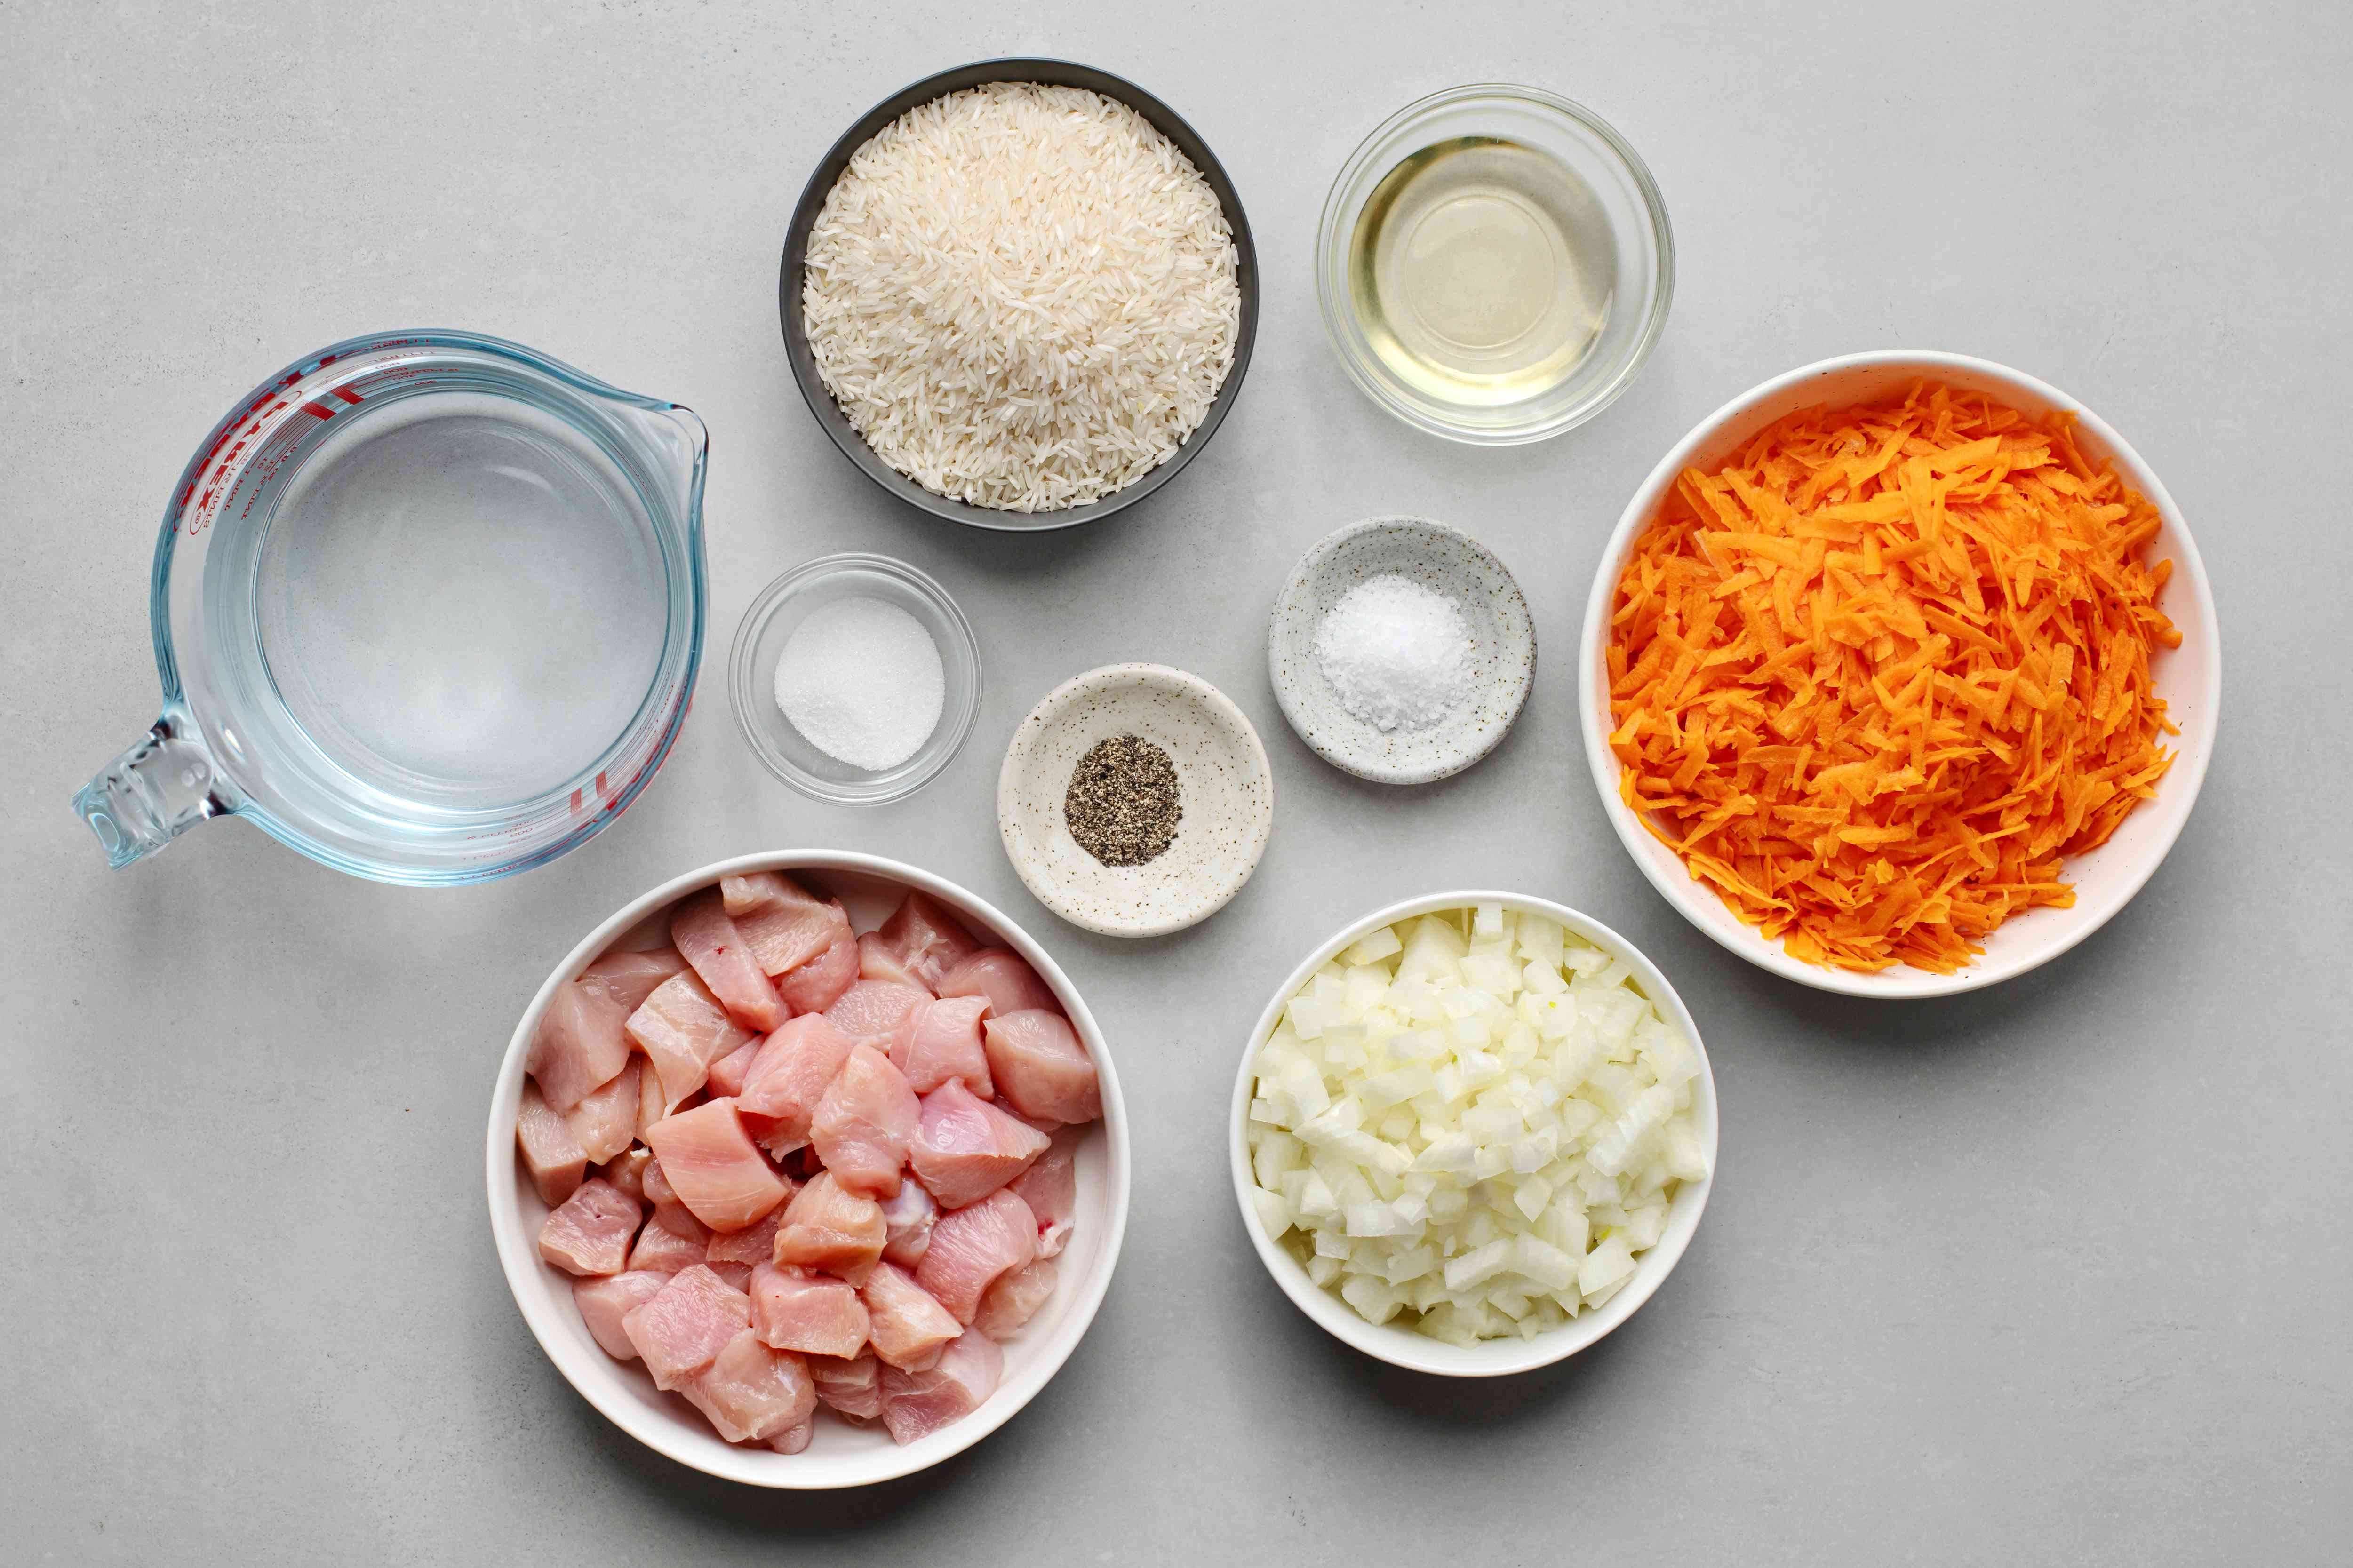 Bukharan Chicken and Rice Plov With Vegetables ingredients